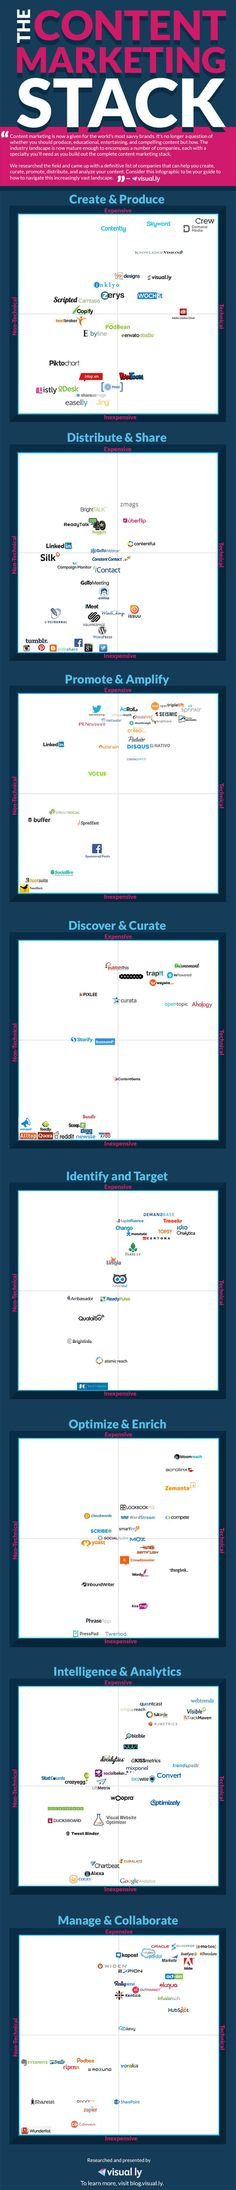 Infographic: The Content Marketing Stack 2015 #infographic http://www.intelisystems.com